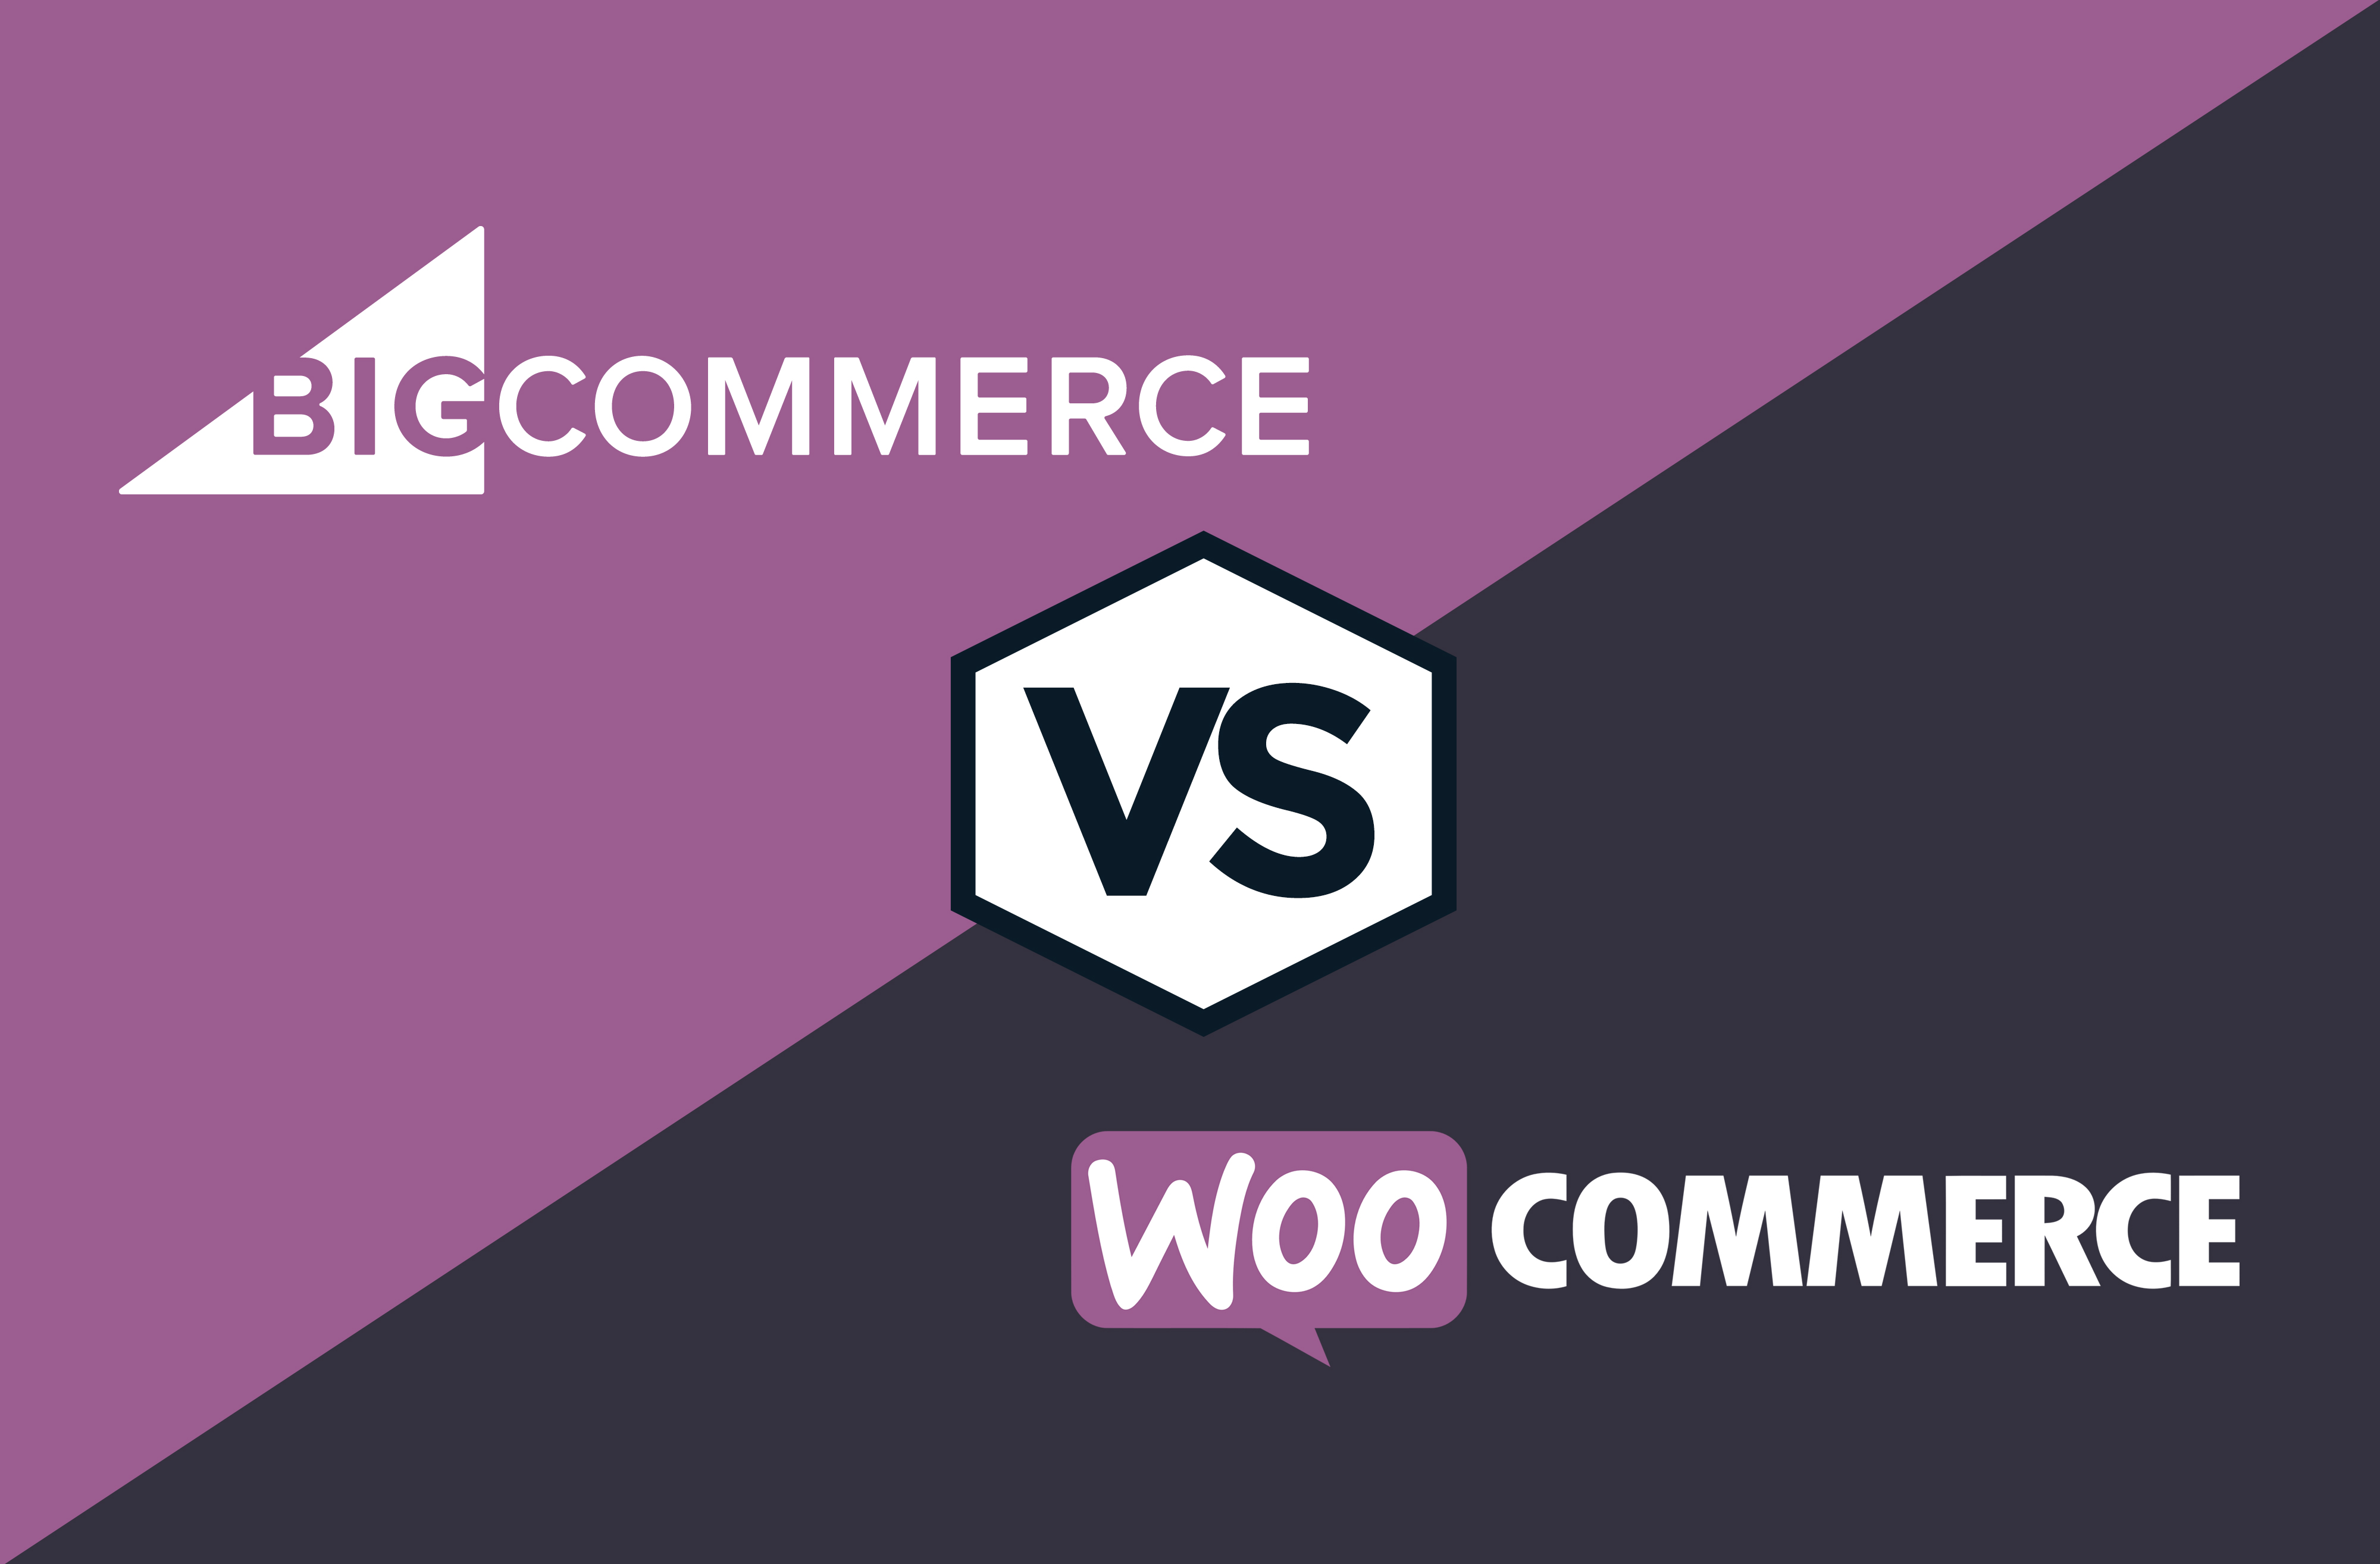 quikclicks - bigcommerce vs woocommerce